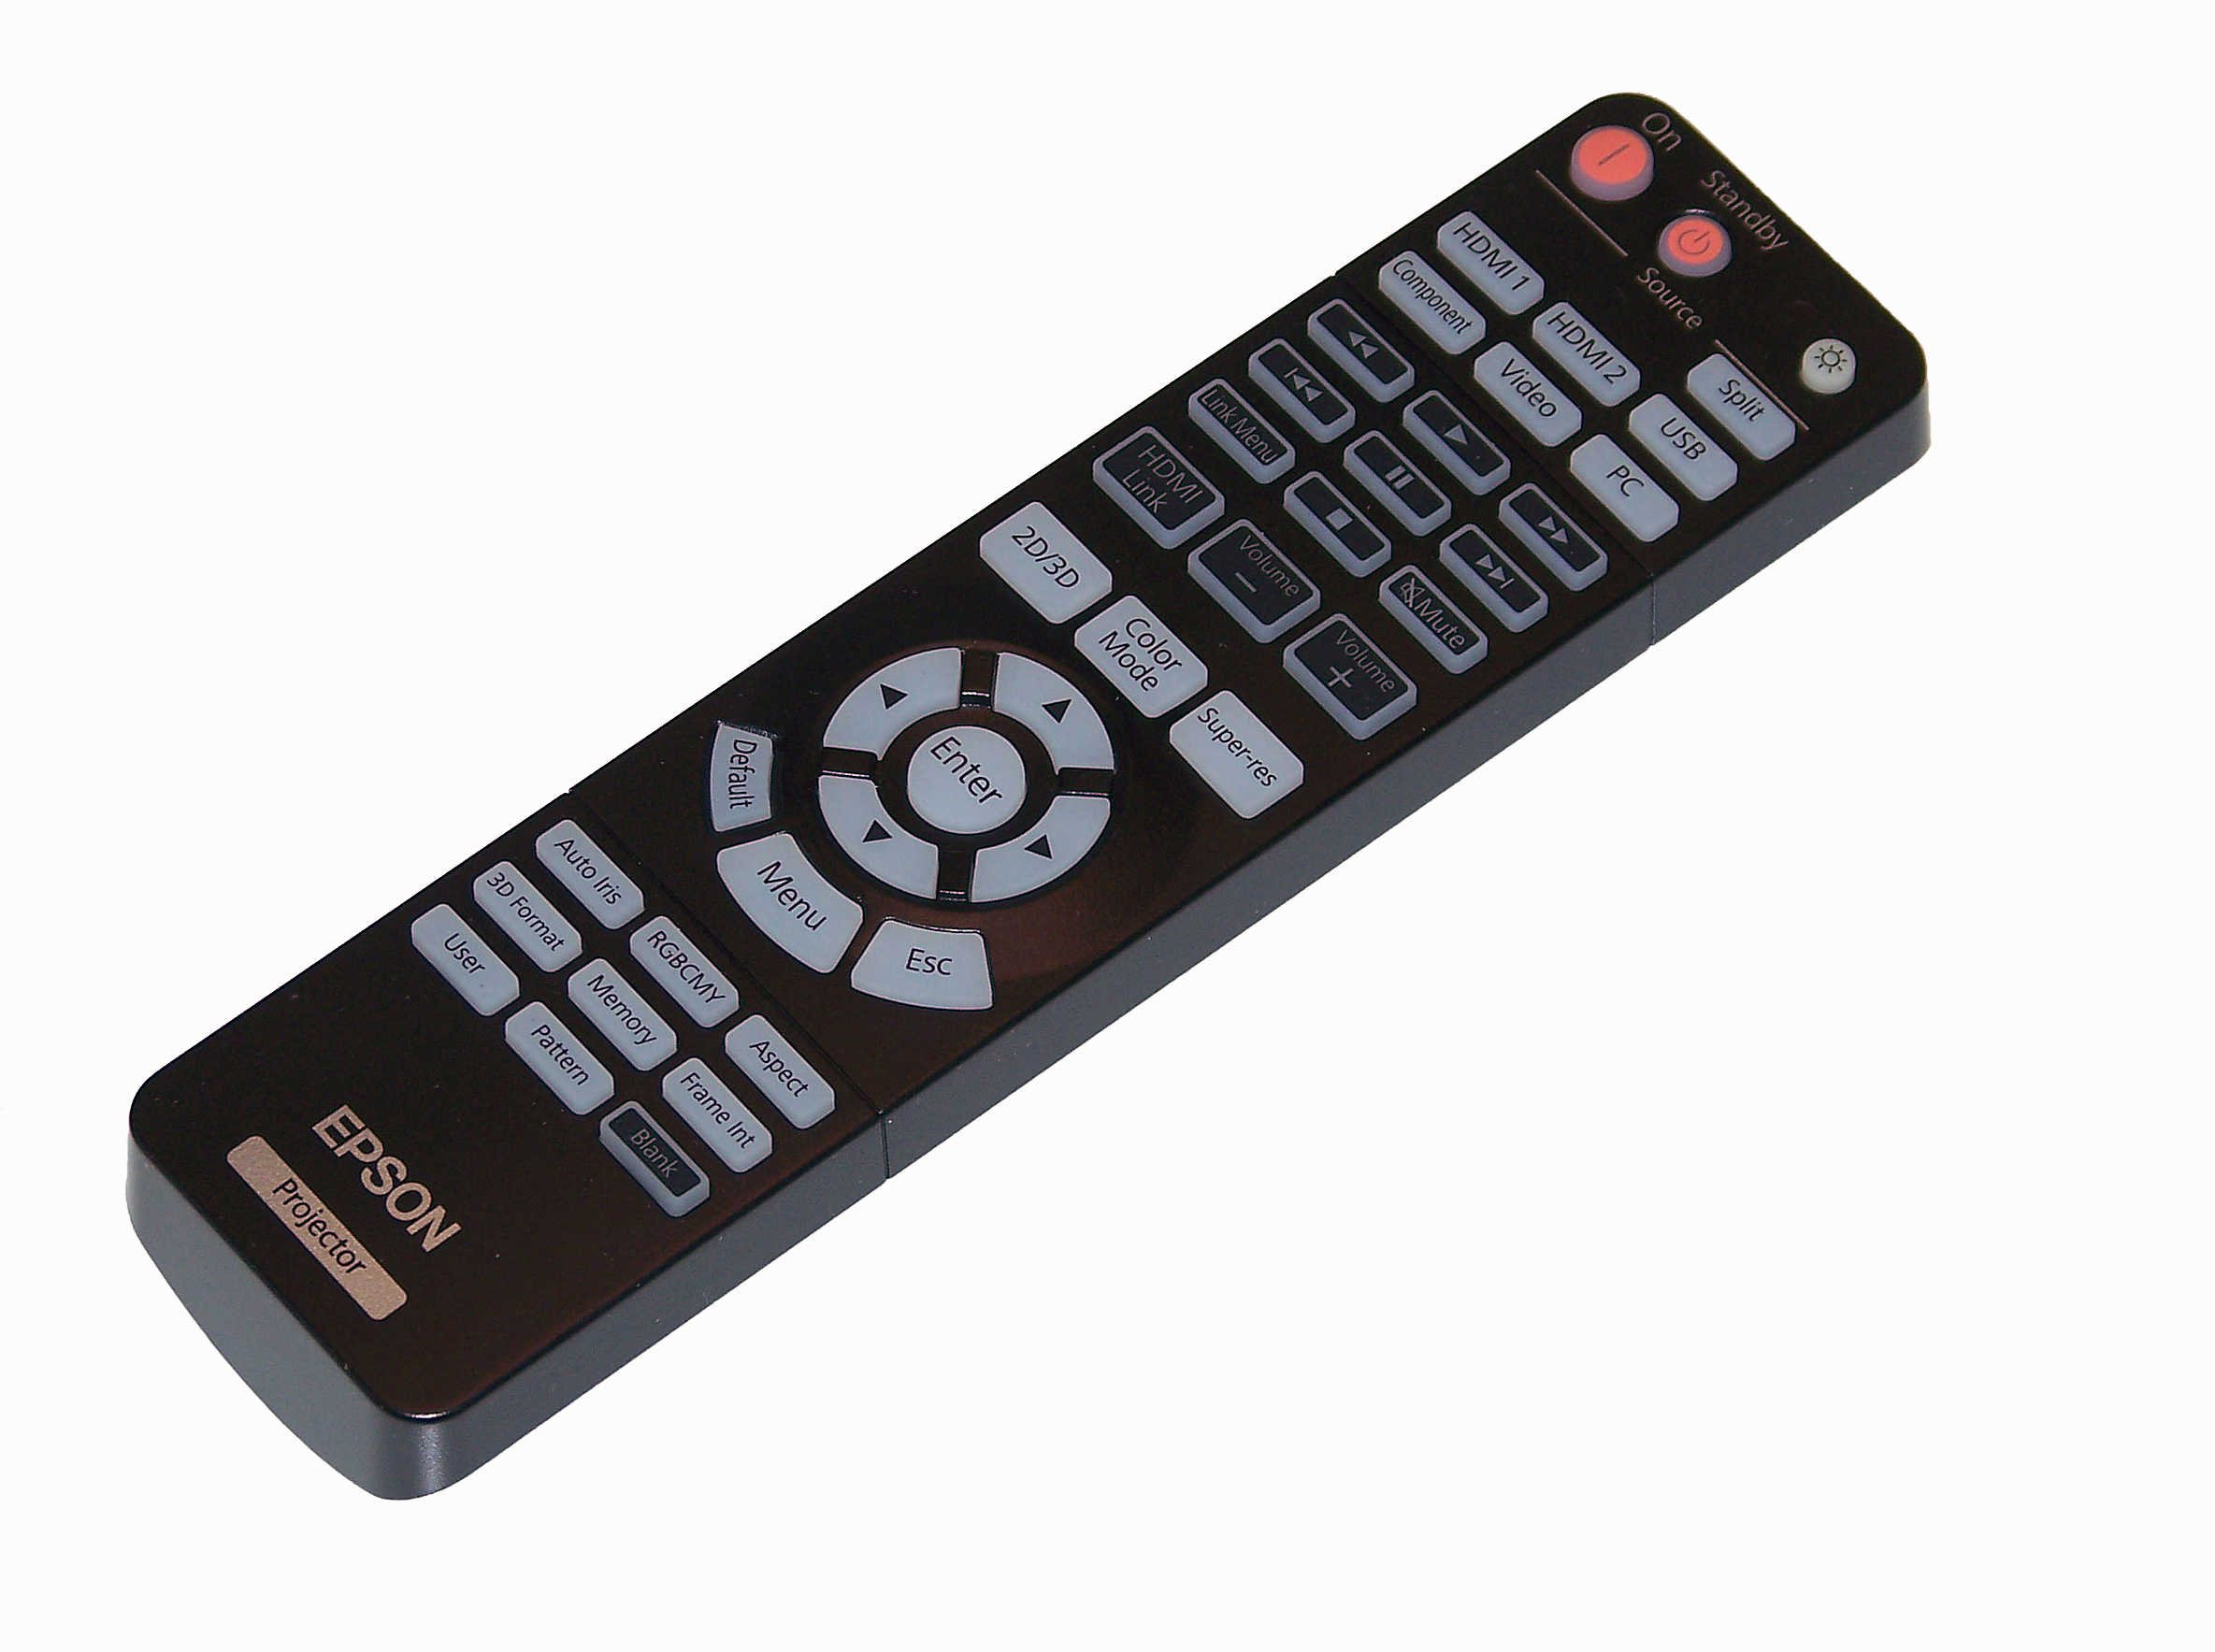 OEM Epson Projector Remote Control Shipped With Epson PowerLite Home Cinema 3020+, PowerLite Pro Cinema 6020UB by Epson